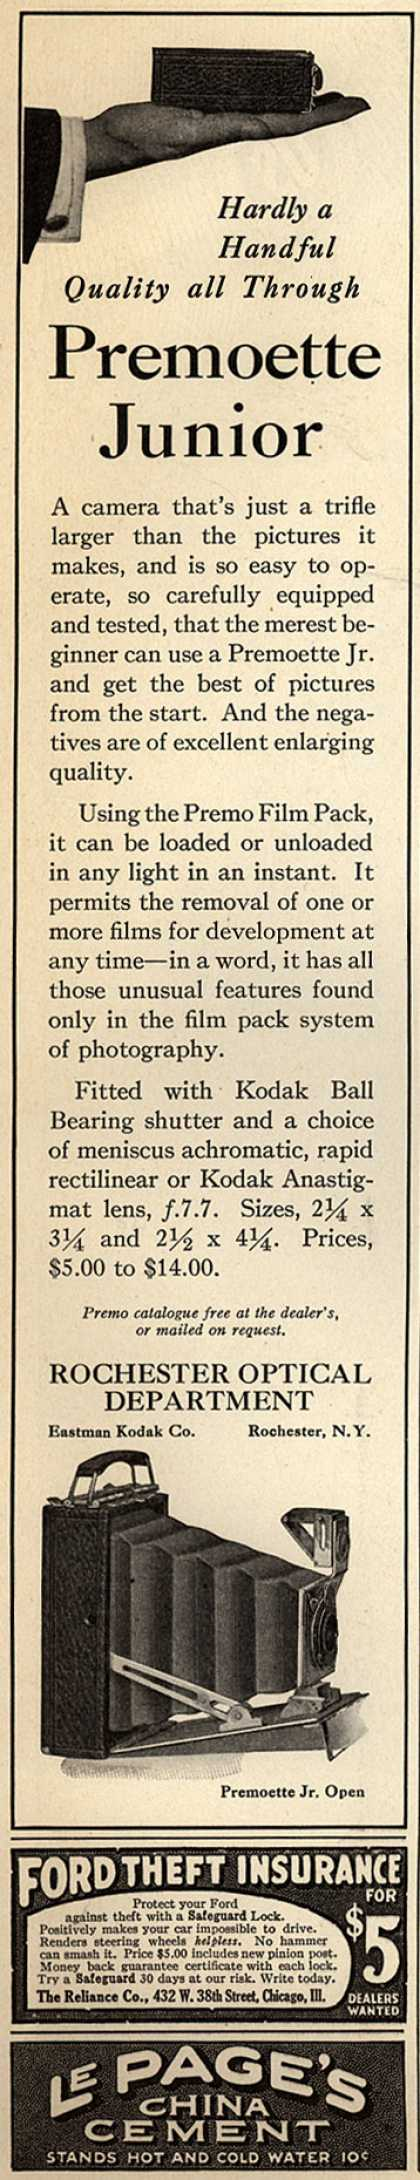 Kodak's Premoette Jr. cameras – Hardly a Handful. Quality all Through (1917)